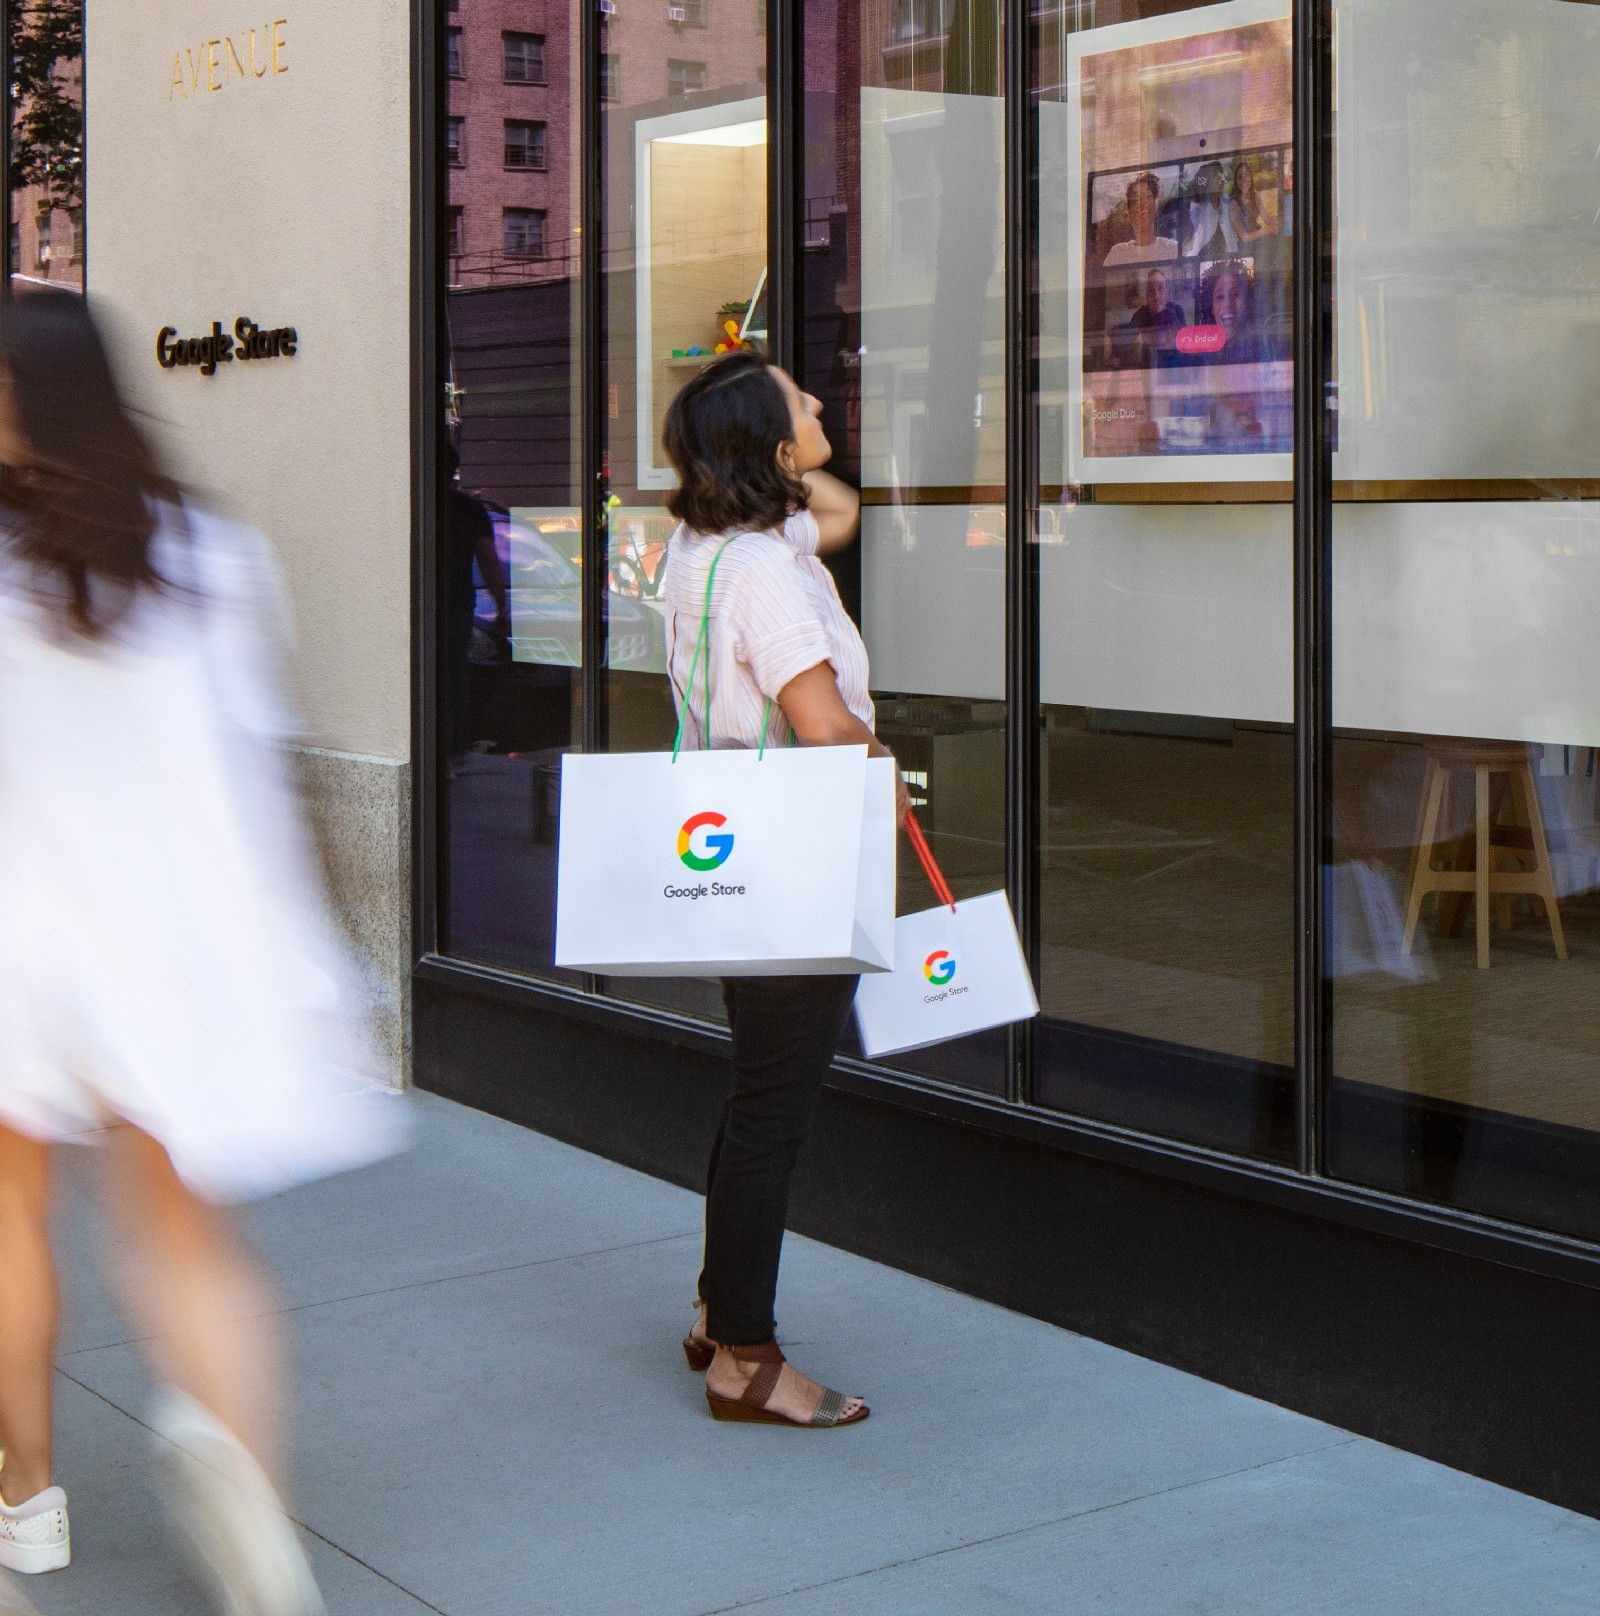 <p>Google Store Chelsea. A person outside the store carrying two Google-branded shopping bags looks at one of the displays facing the street.</p>